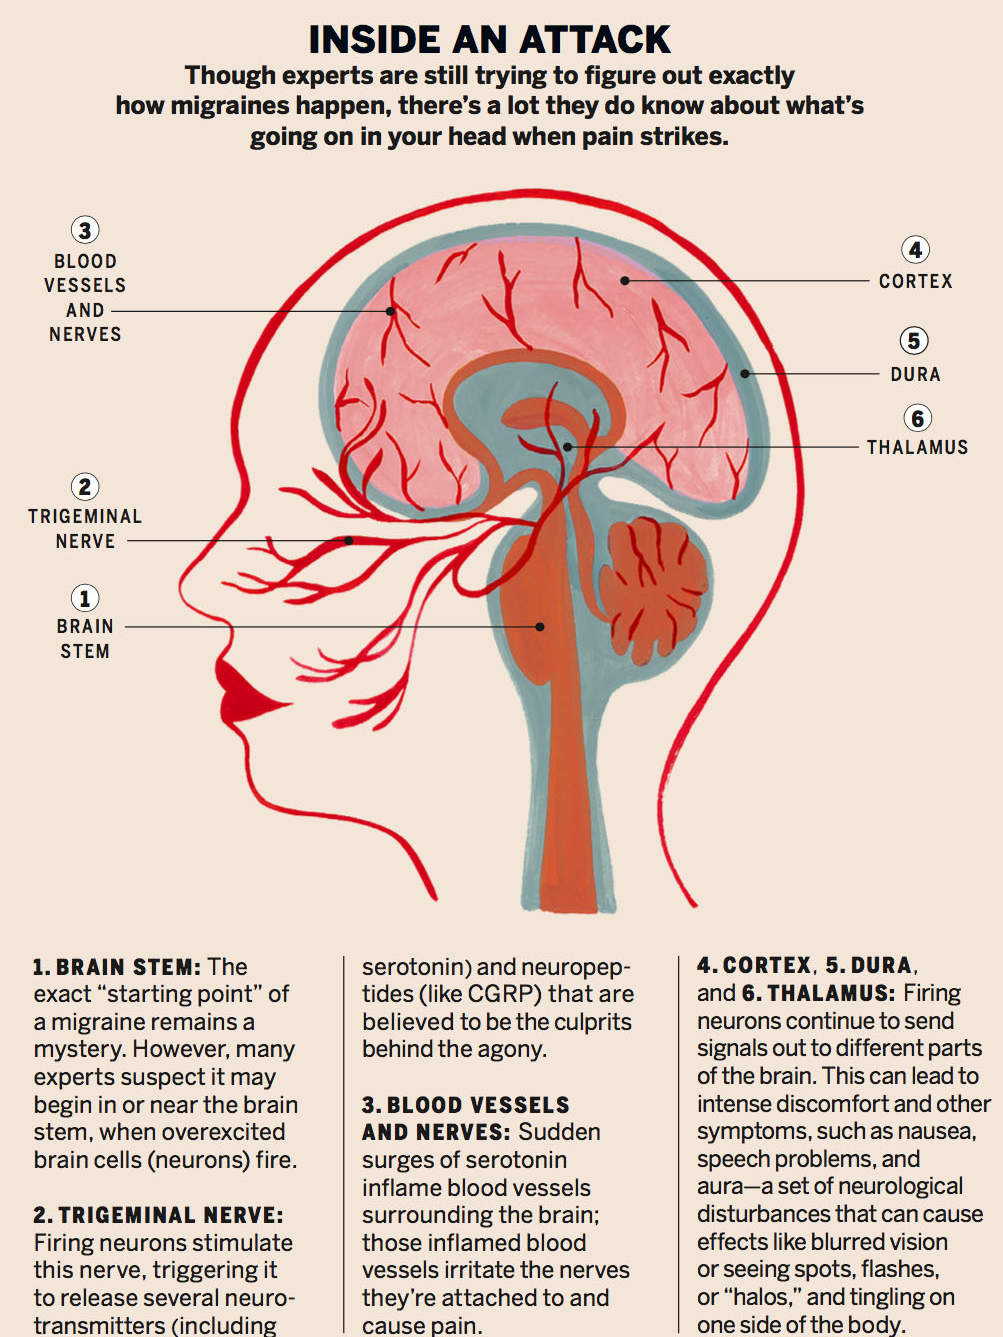 related: 11 surprising headache triggers